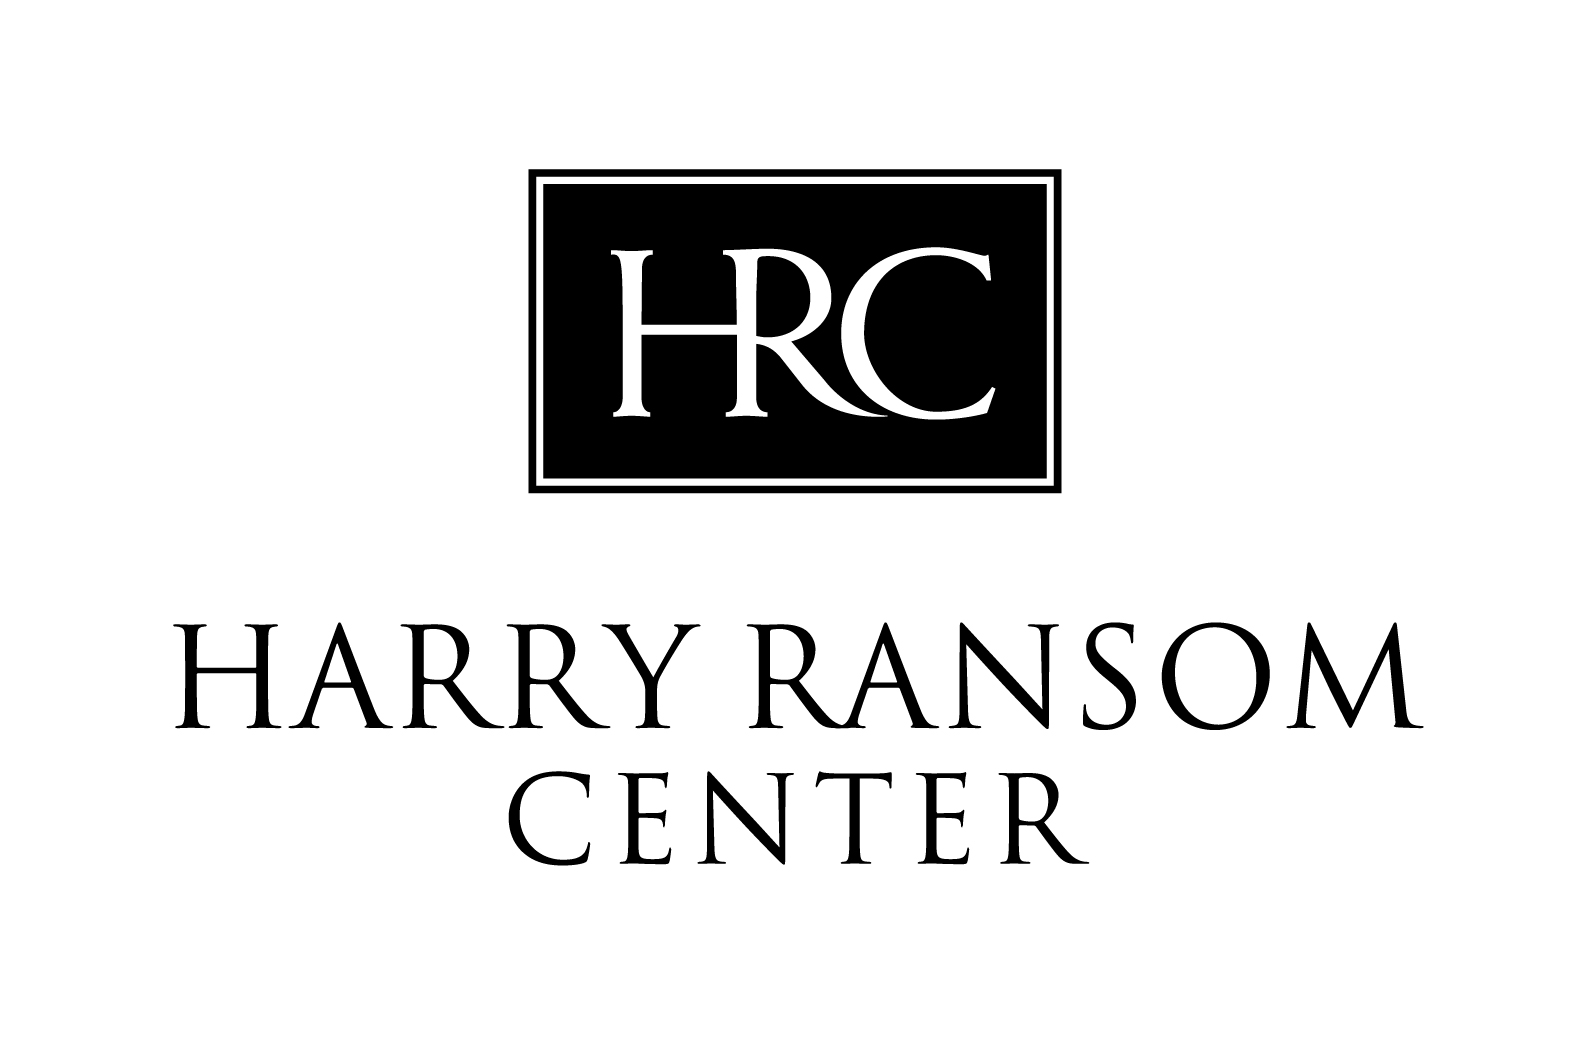 Harry Ransom Center logo